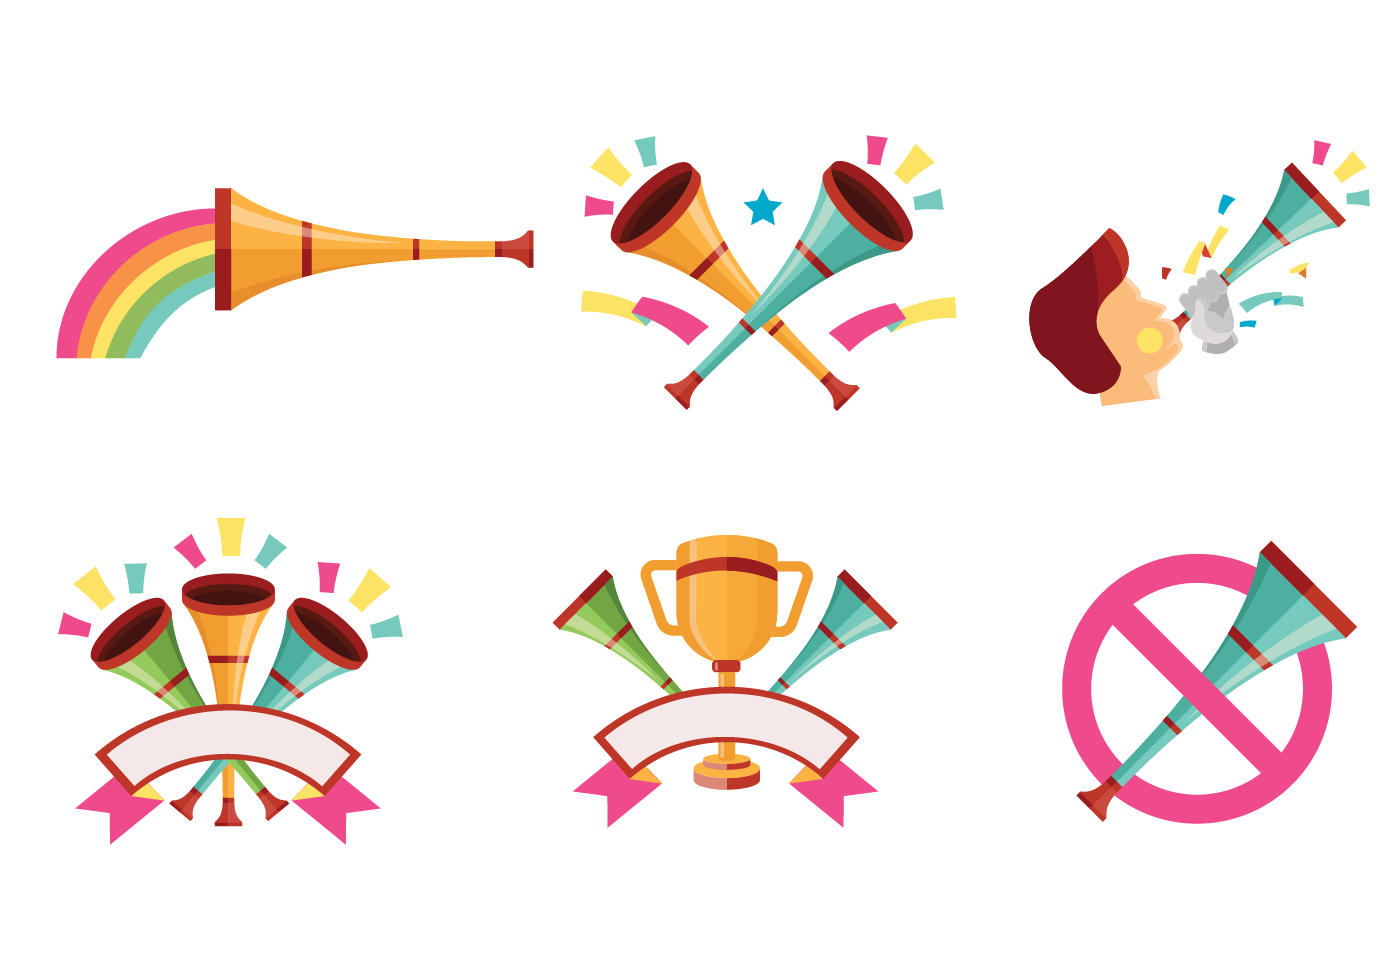 Celebratory Vuvuzela Vectors Download Free Vector Art